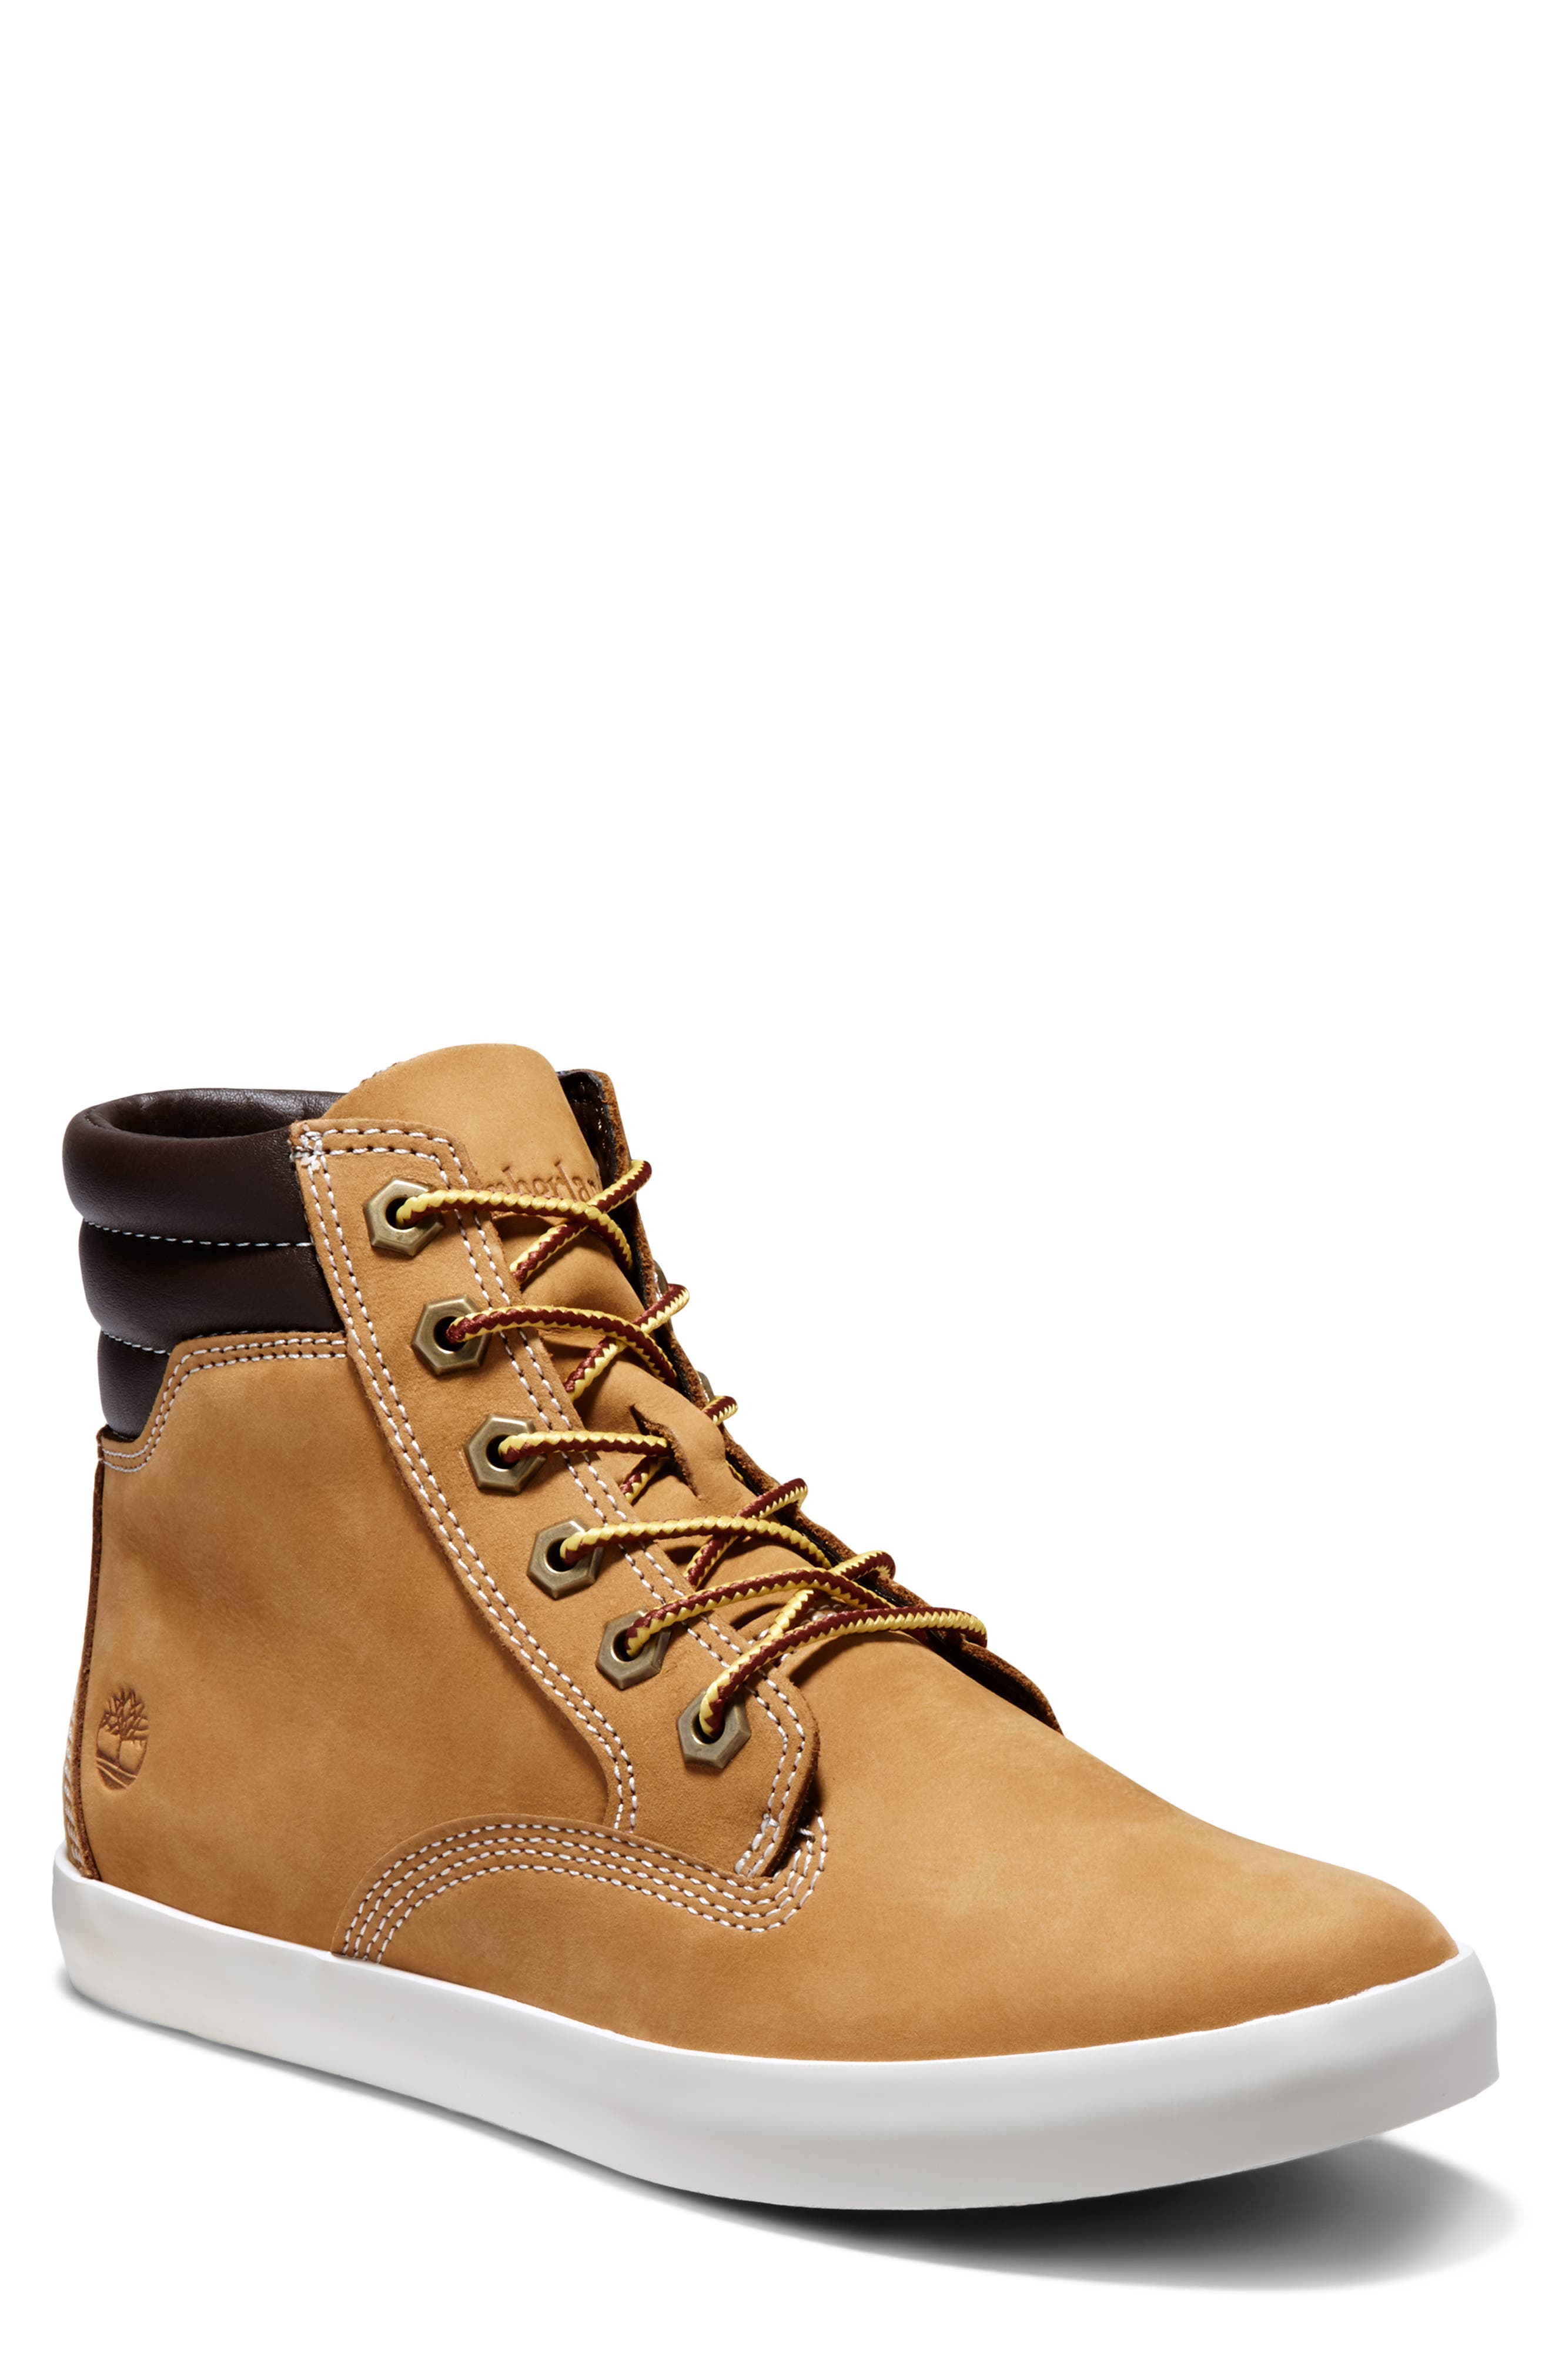 Women's Timberland Boots | Nordstrom